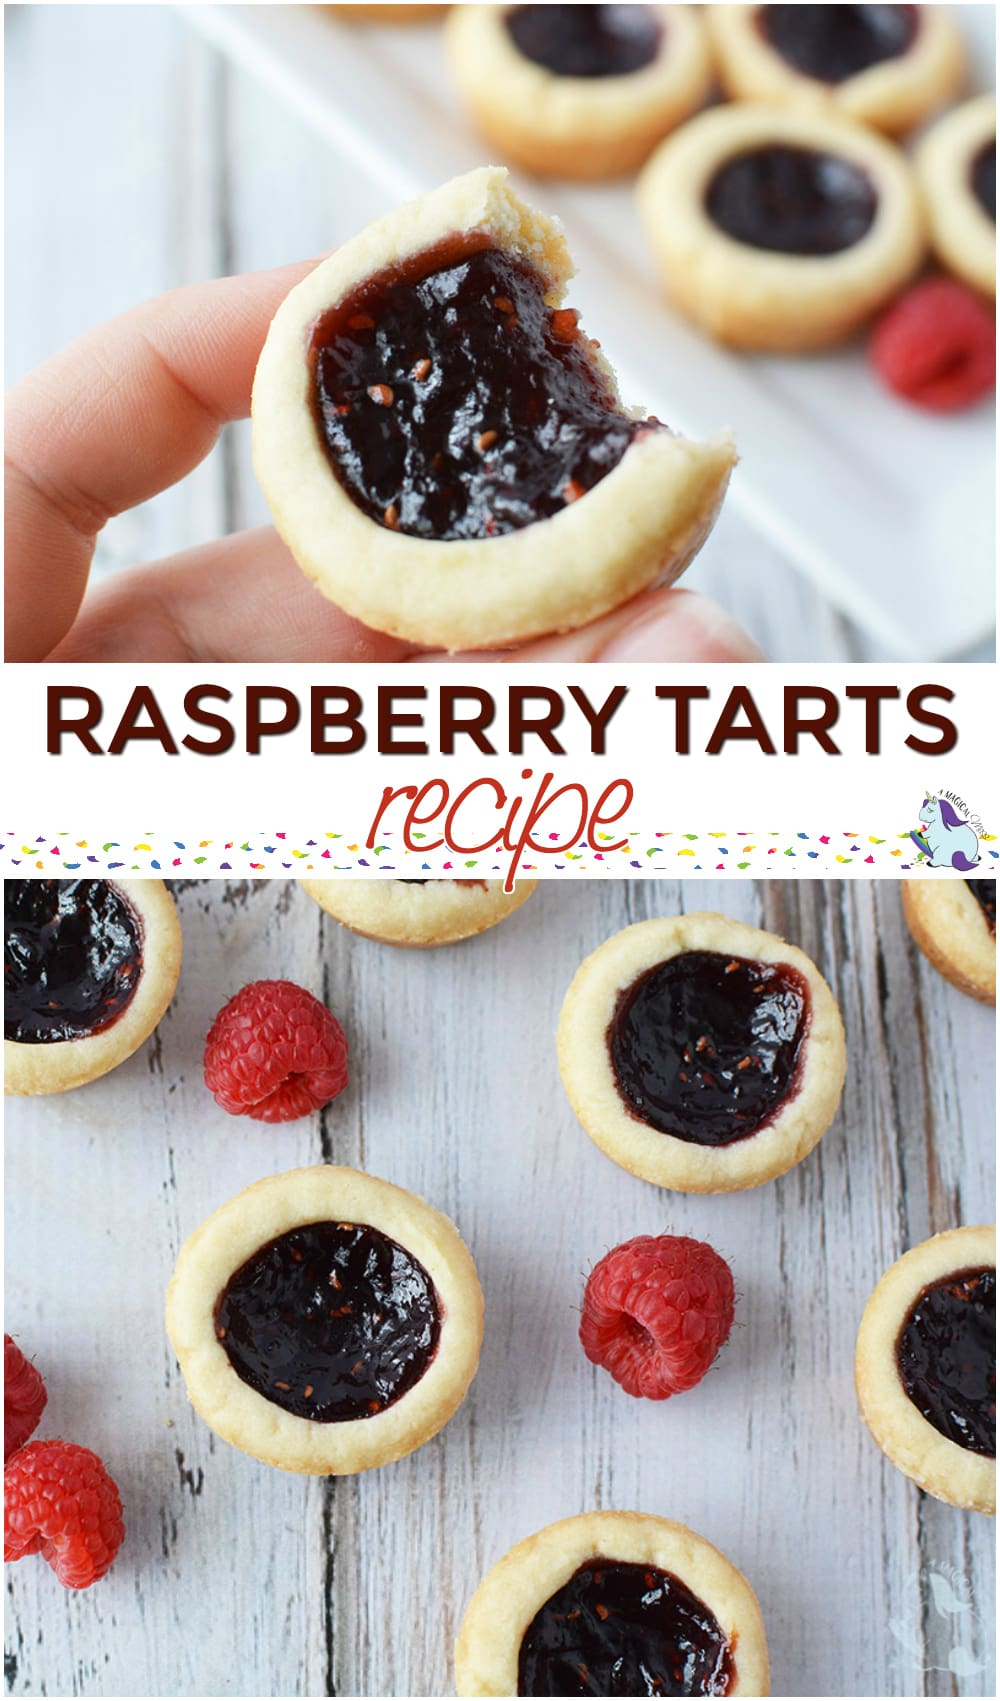 Easy raspberry tarts #recipe Mini Tarts with a buttery crunch #raspberry #tarts #valentinesday #bake #cookies #mini